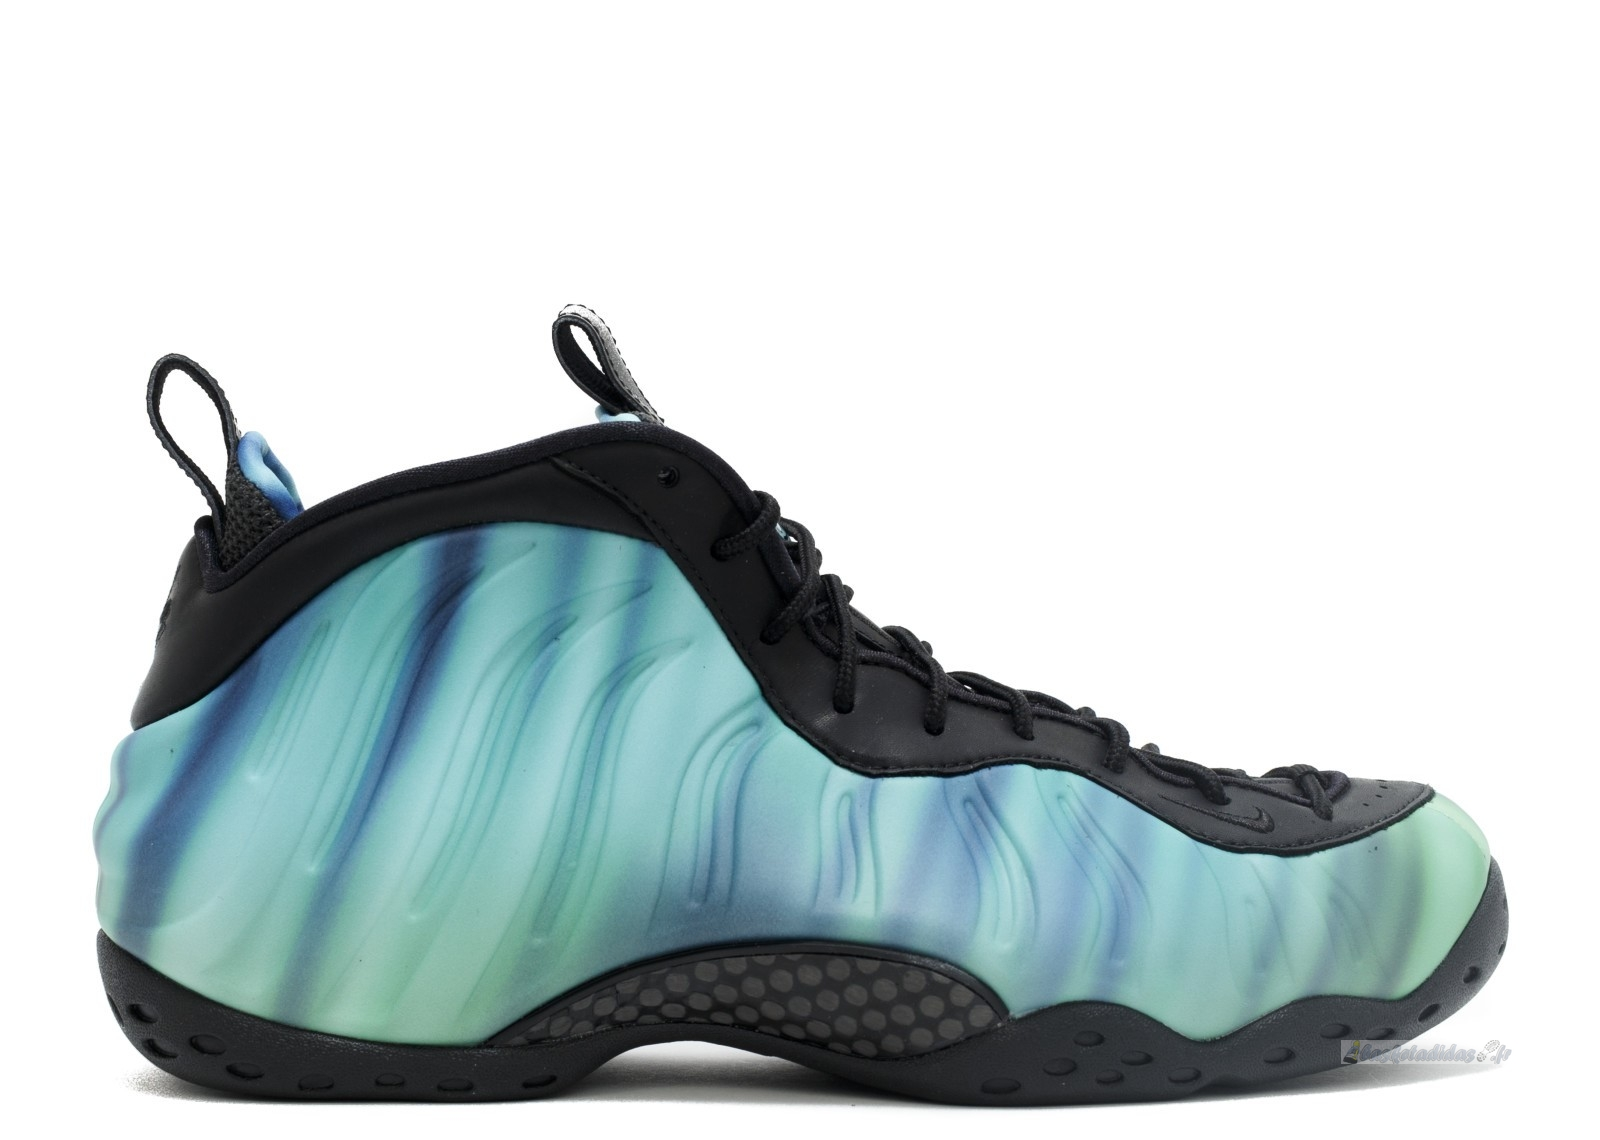 "Chaussure de Basket Nike Air Foamposite One Femme Prm As Qs ""Northern Lights"" Noir Vert Pourpre (840559-001)"